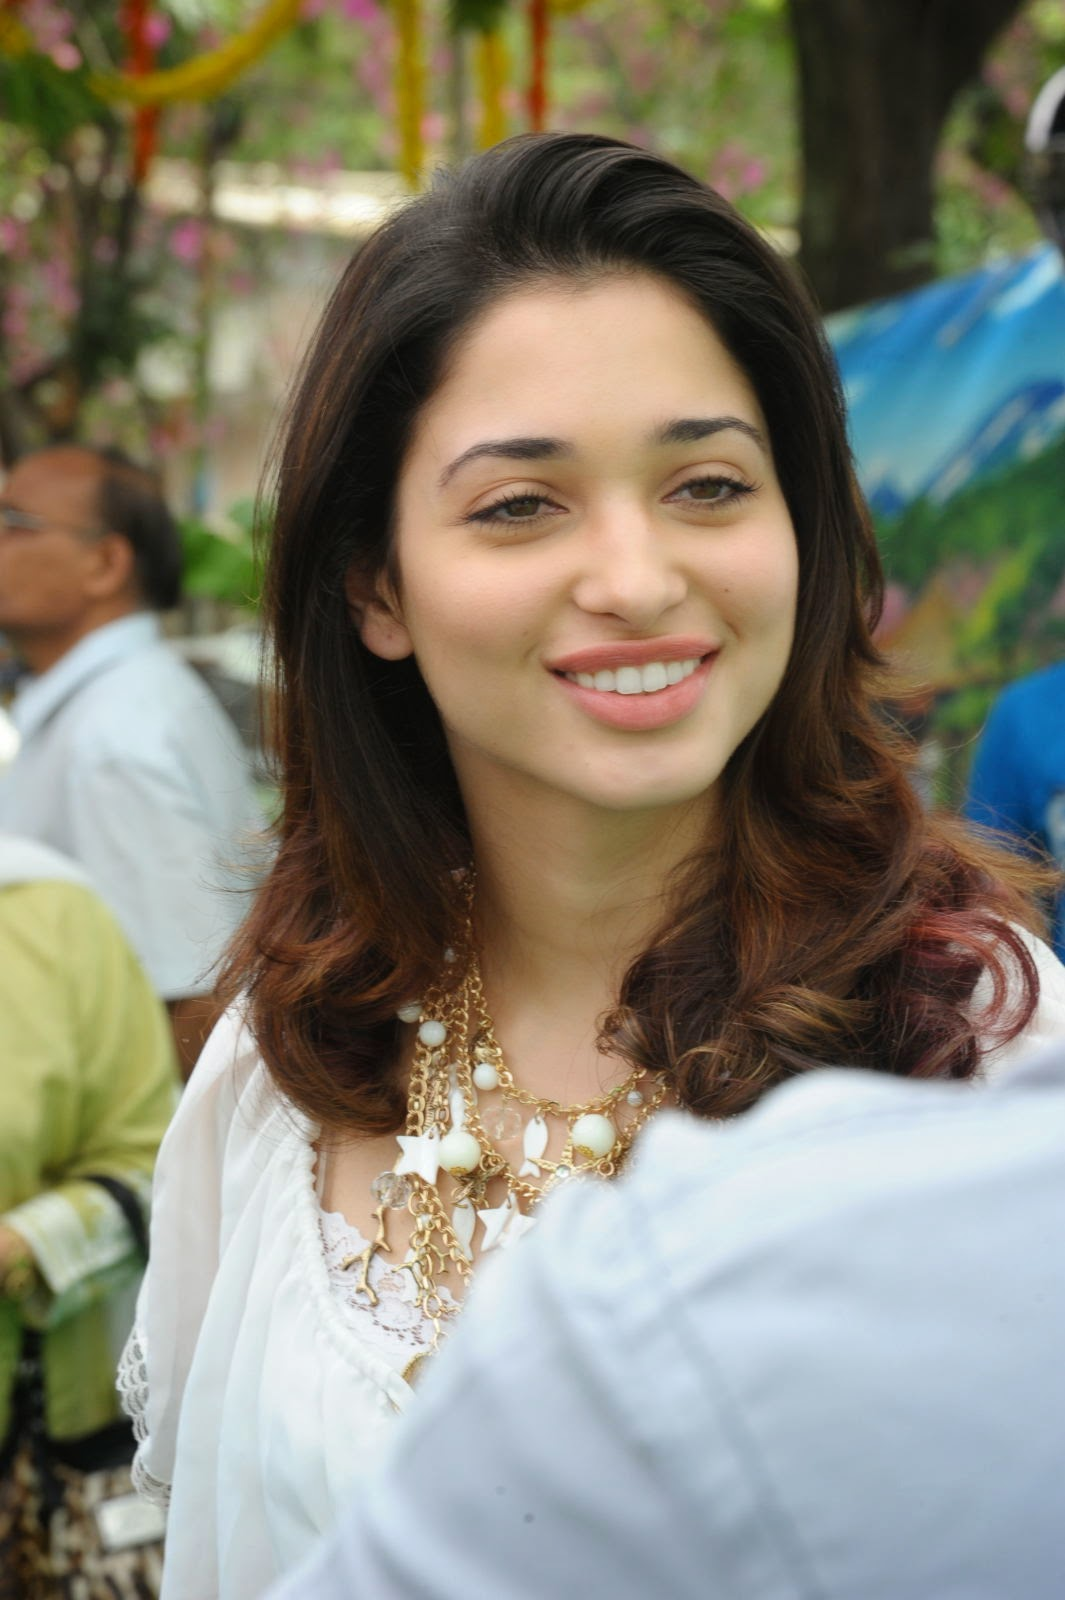 tamanna bhatia hot wallpaper